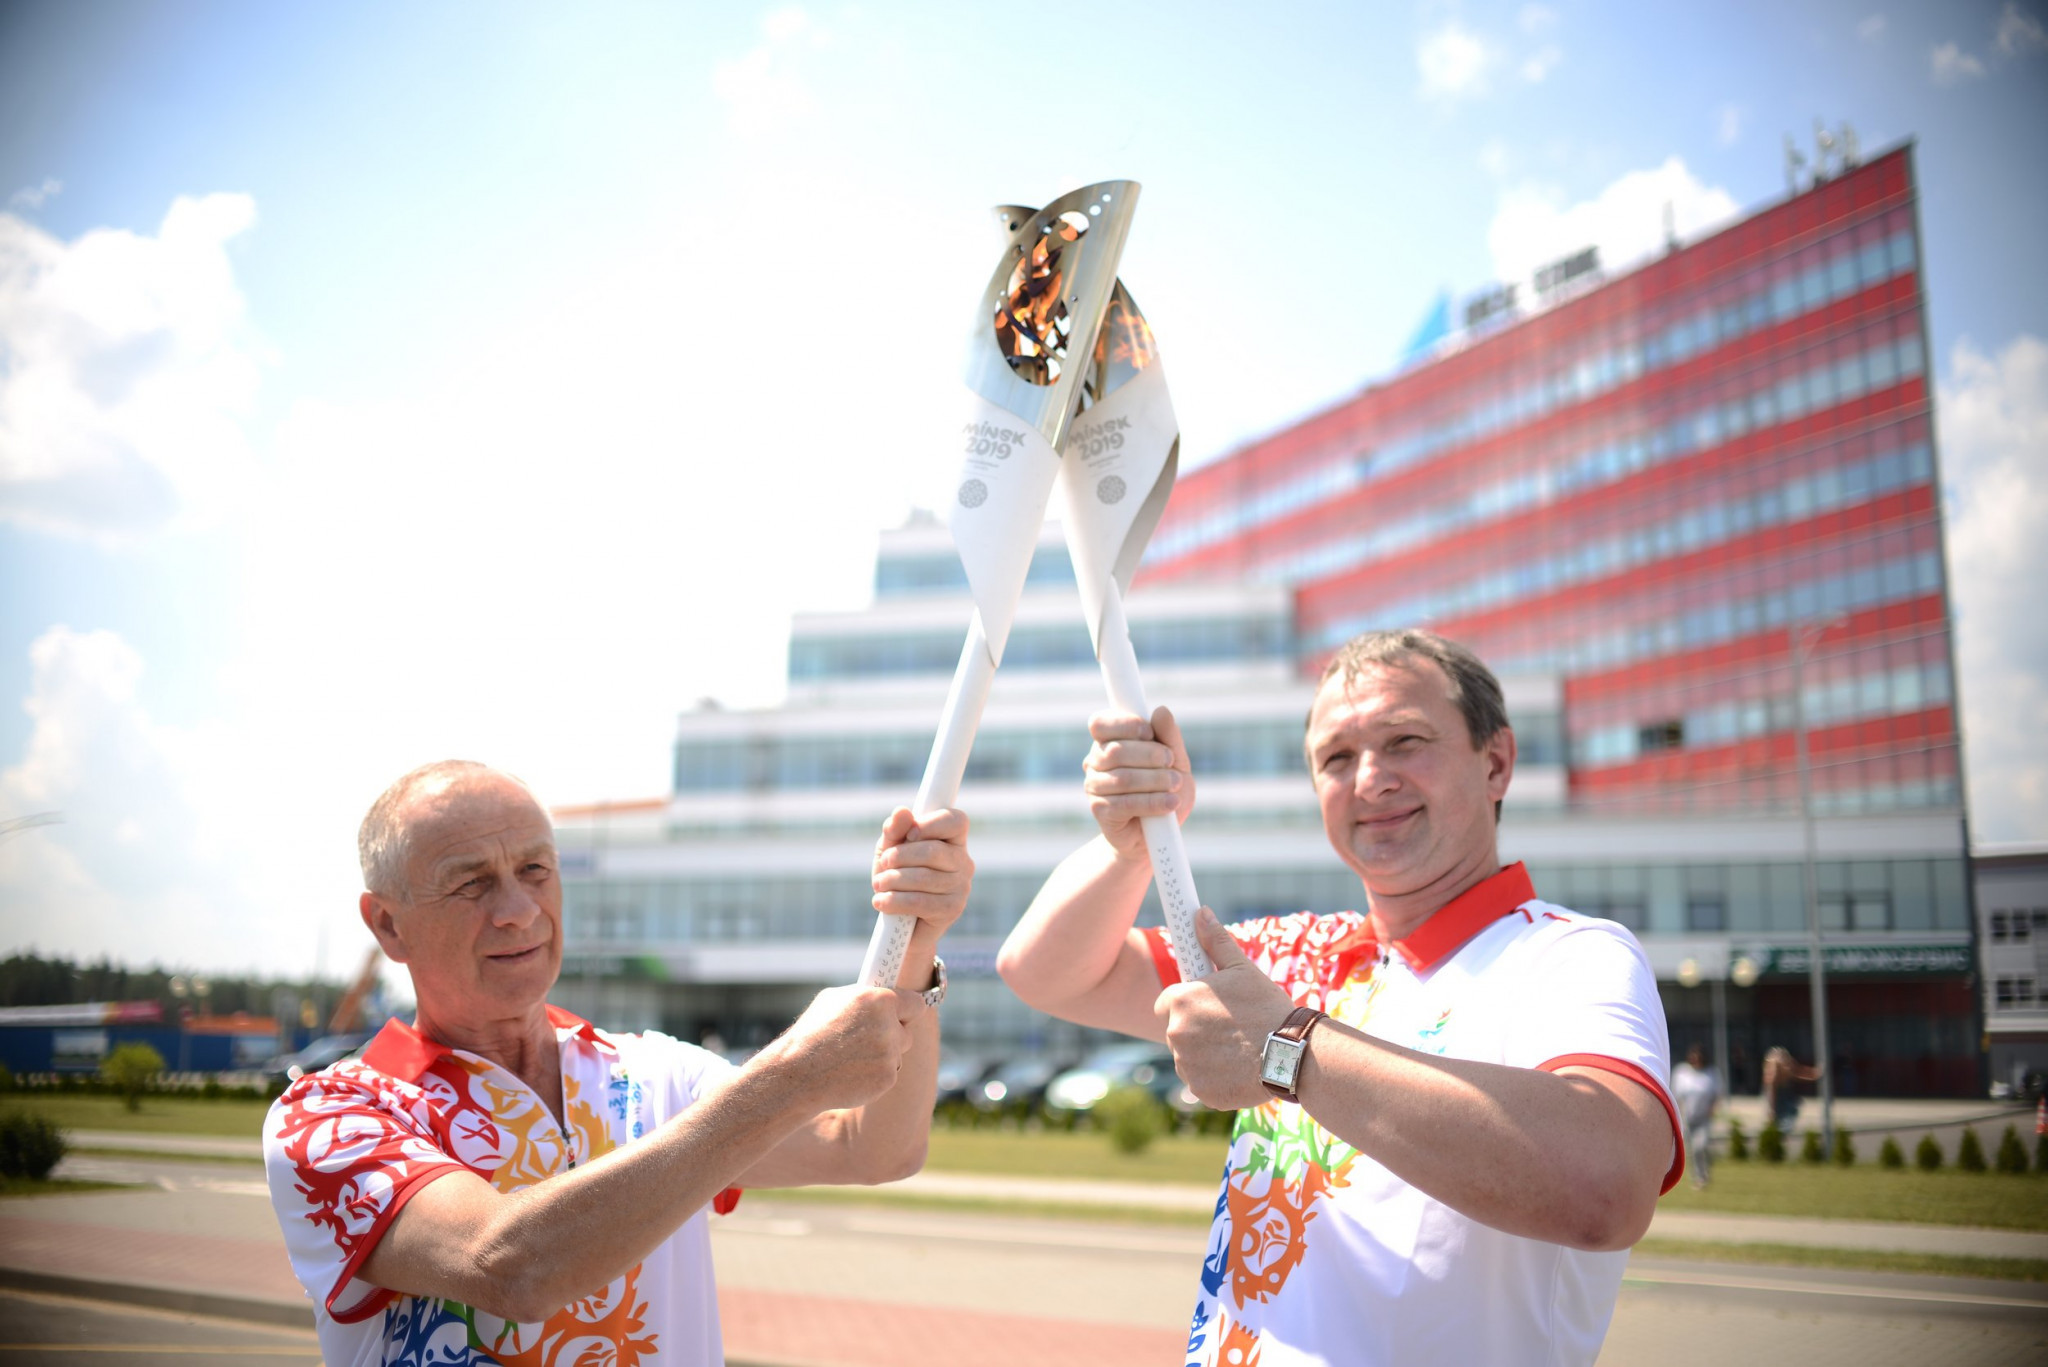 The European Games Torch, which was lit in Rome, has been carried by a variety of figures in sport and beyond ©Minsk 2019